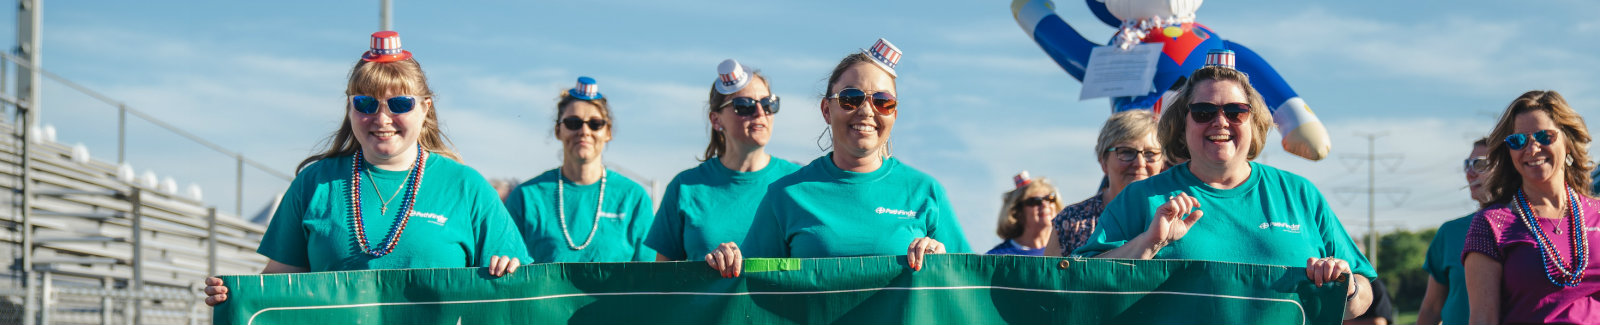 Group of Pathfinder Bank employees marching at Relay for Life Event 2019